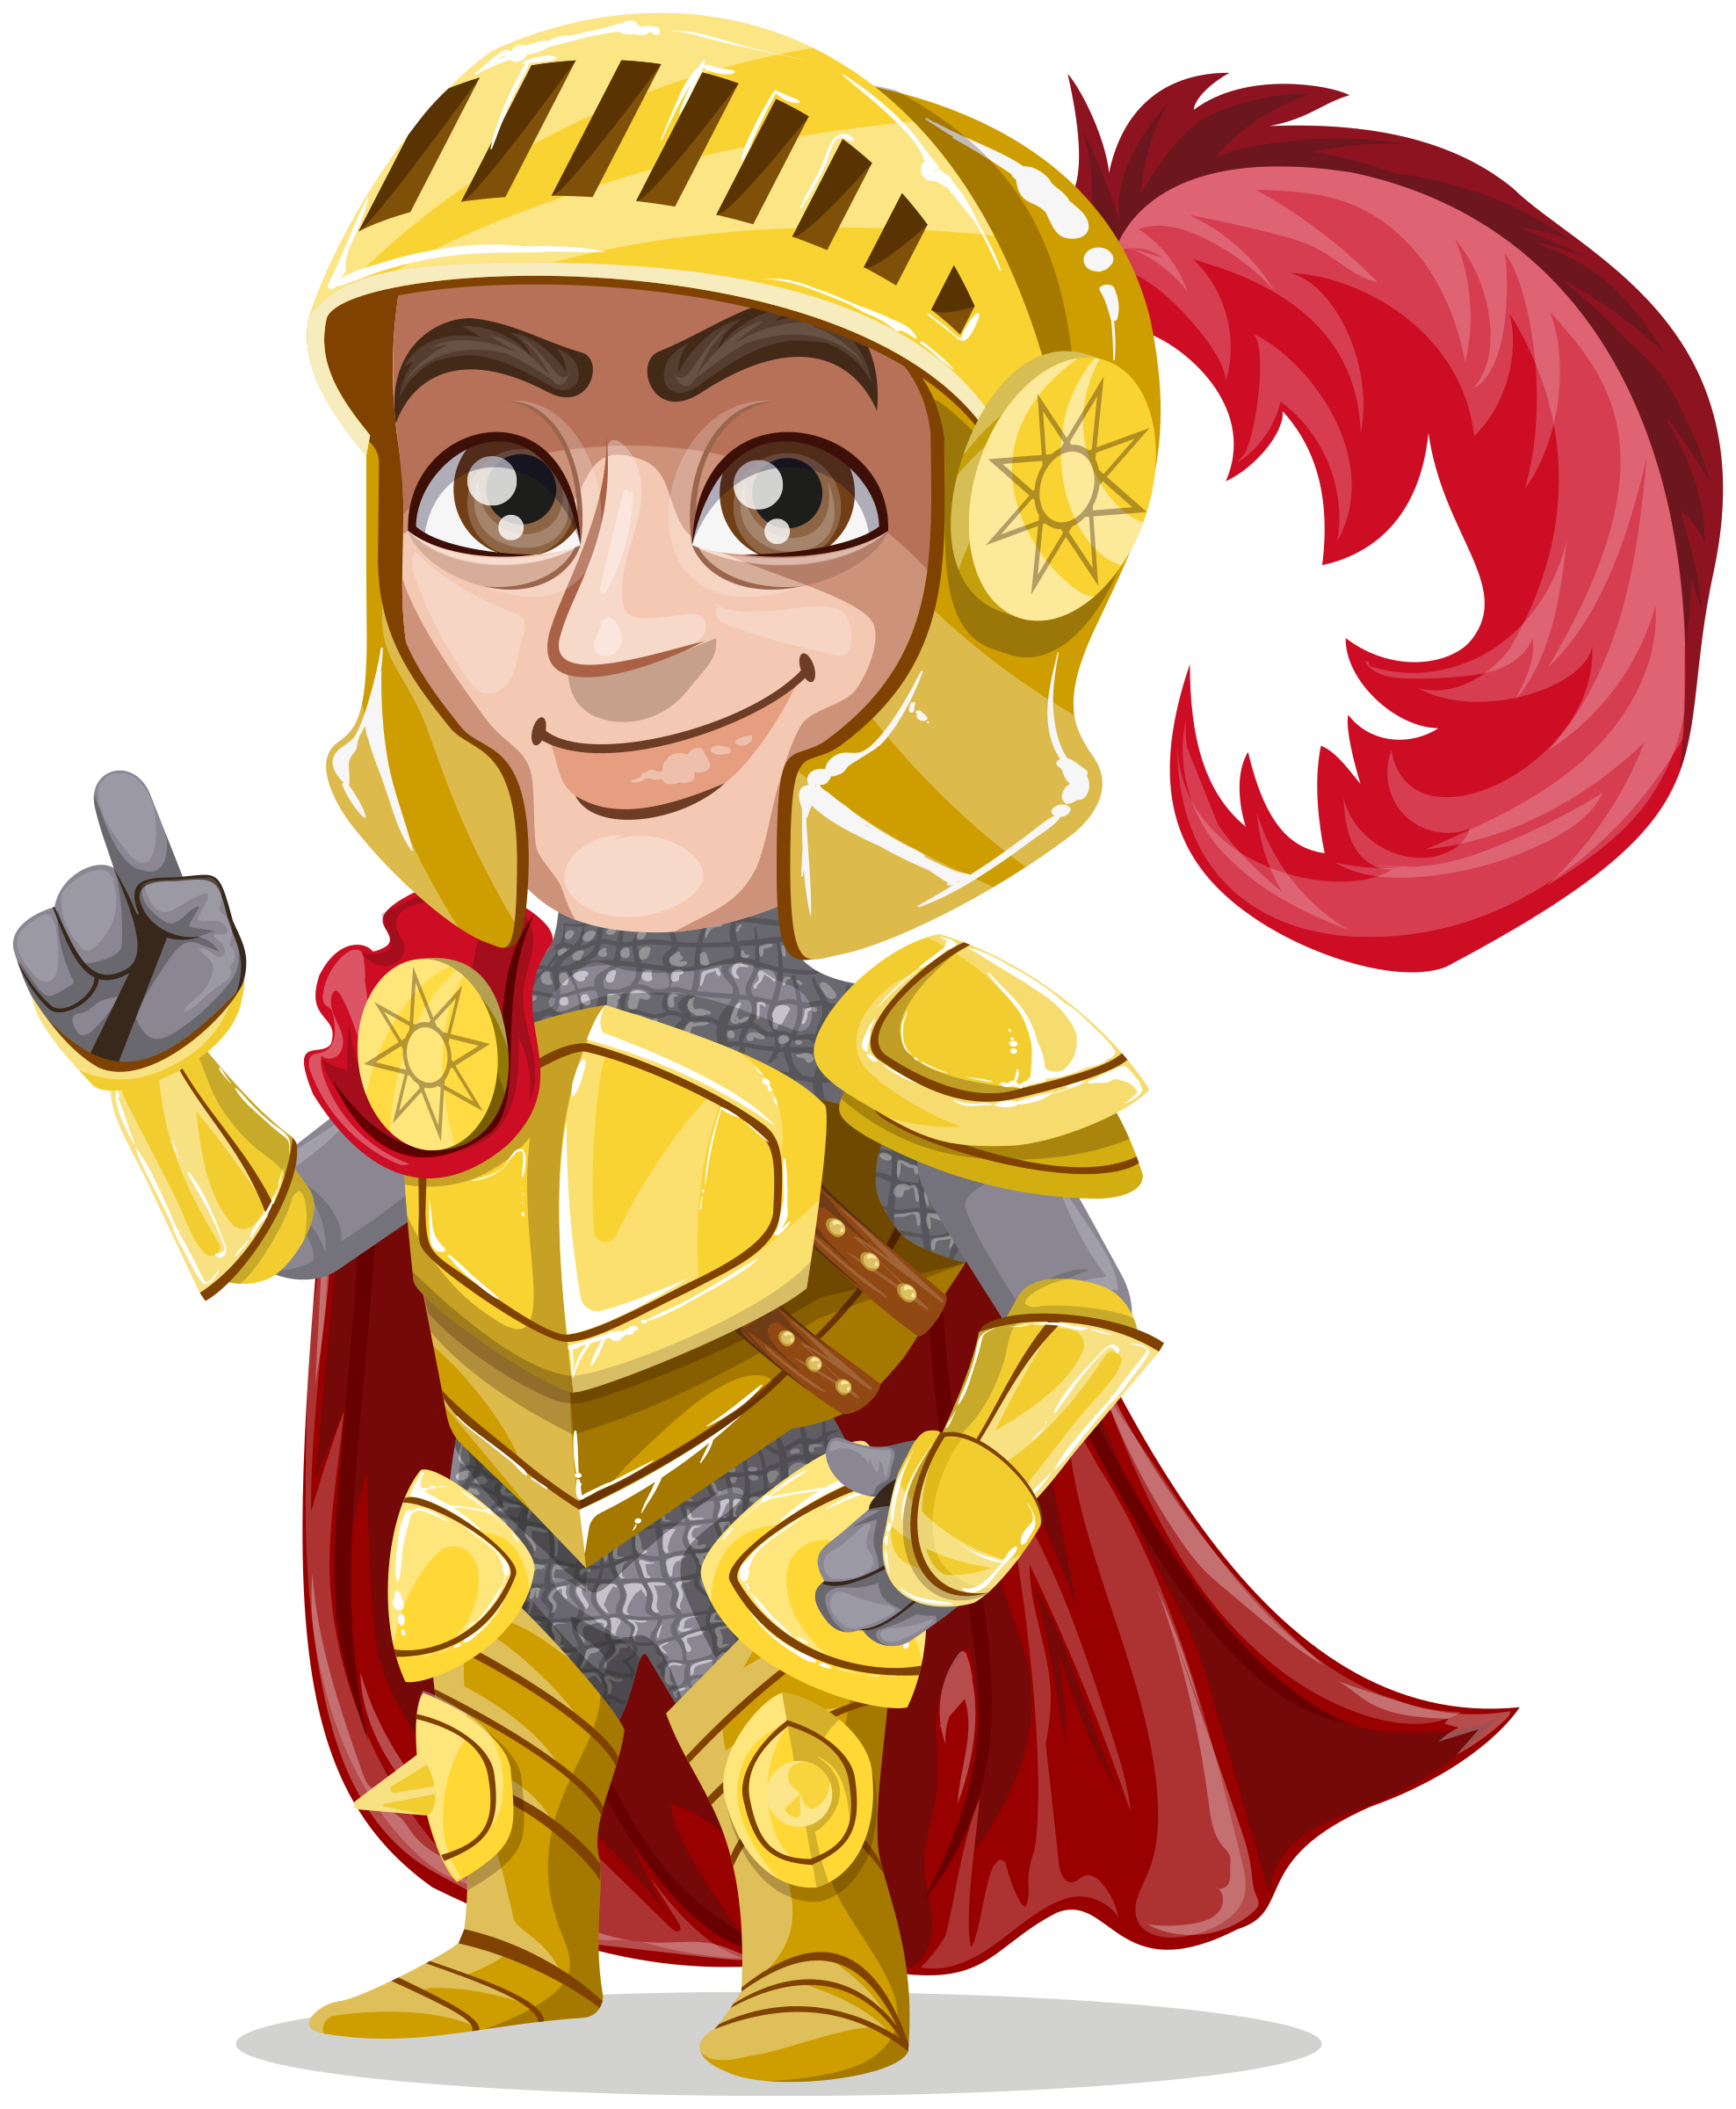 King or prince warrior in golden armor, without weapons by Juhele